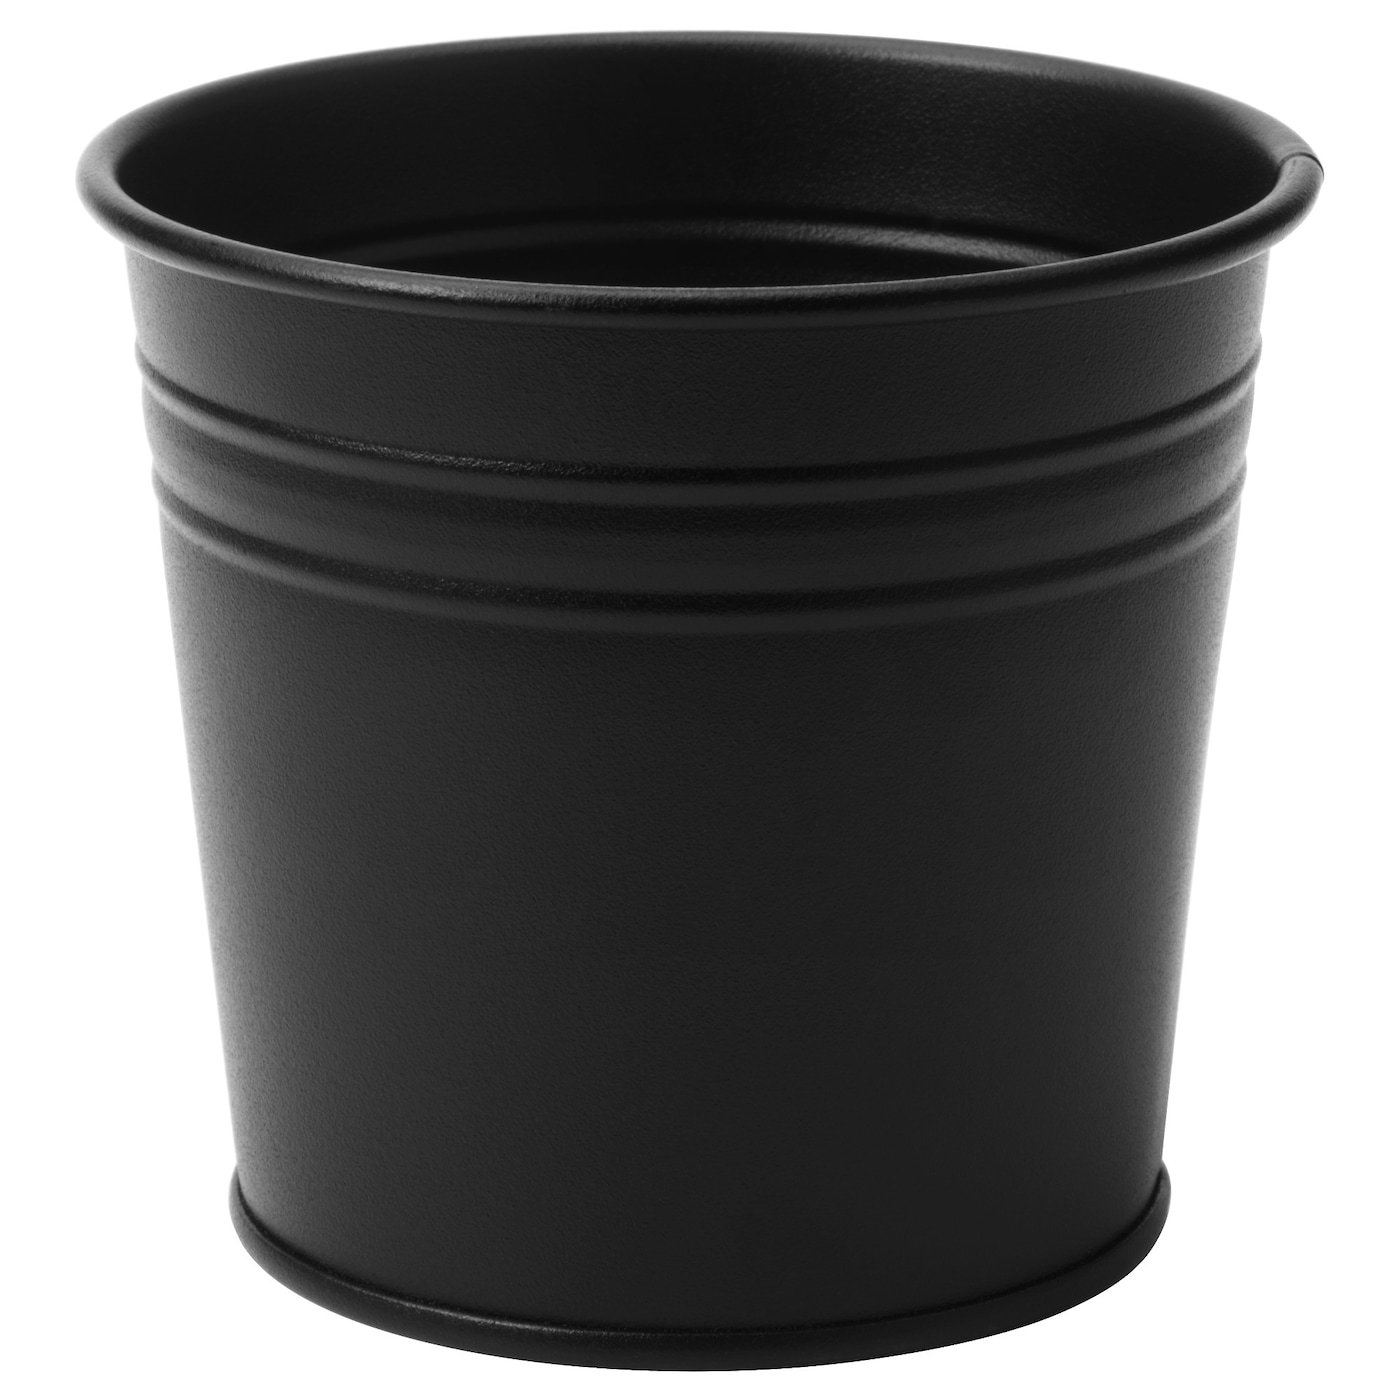 Socker plant pot in outdoor black 9 cm ikea for Black planters ikea